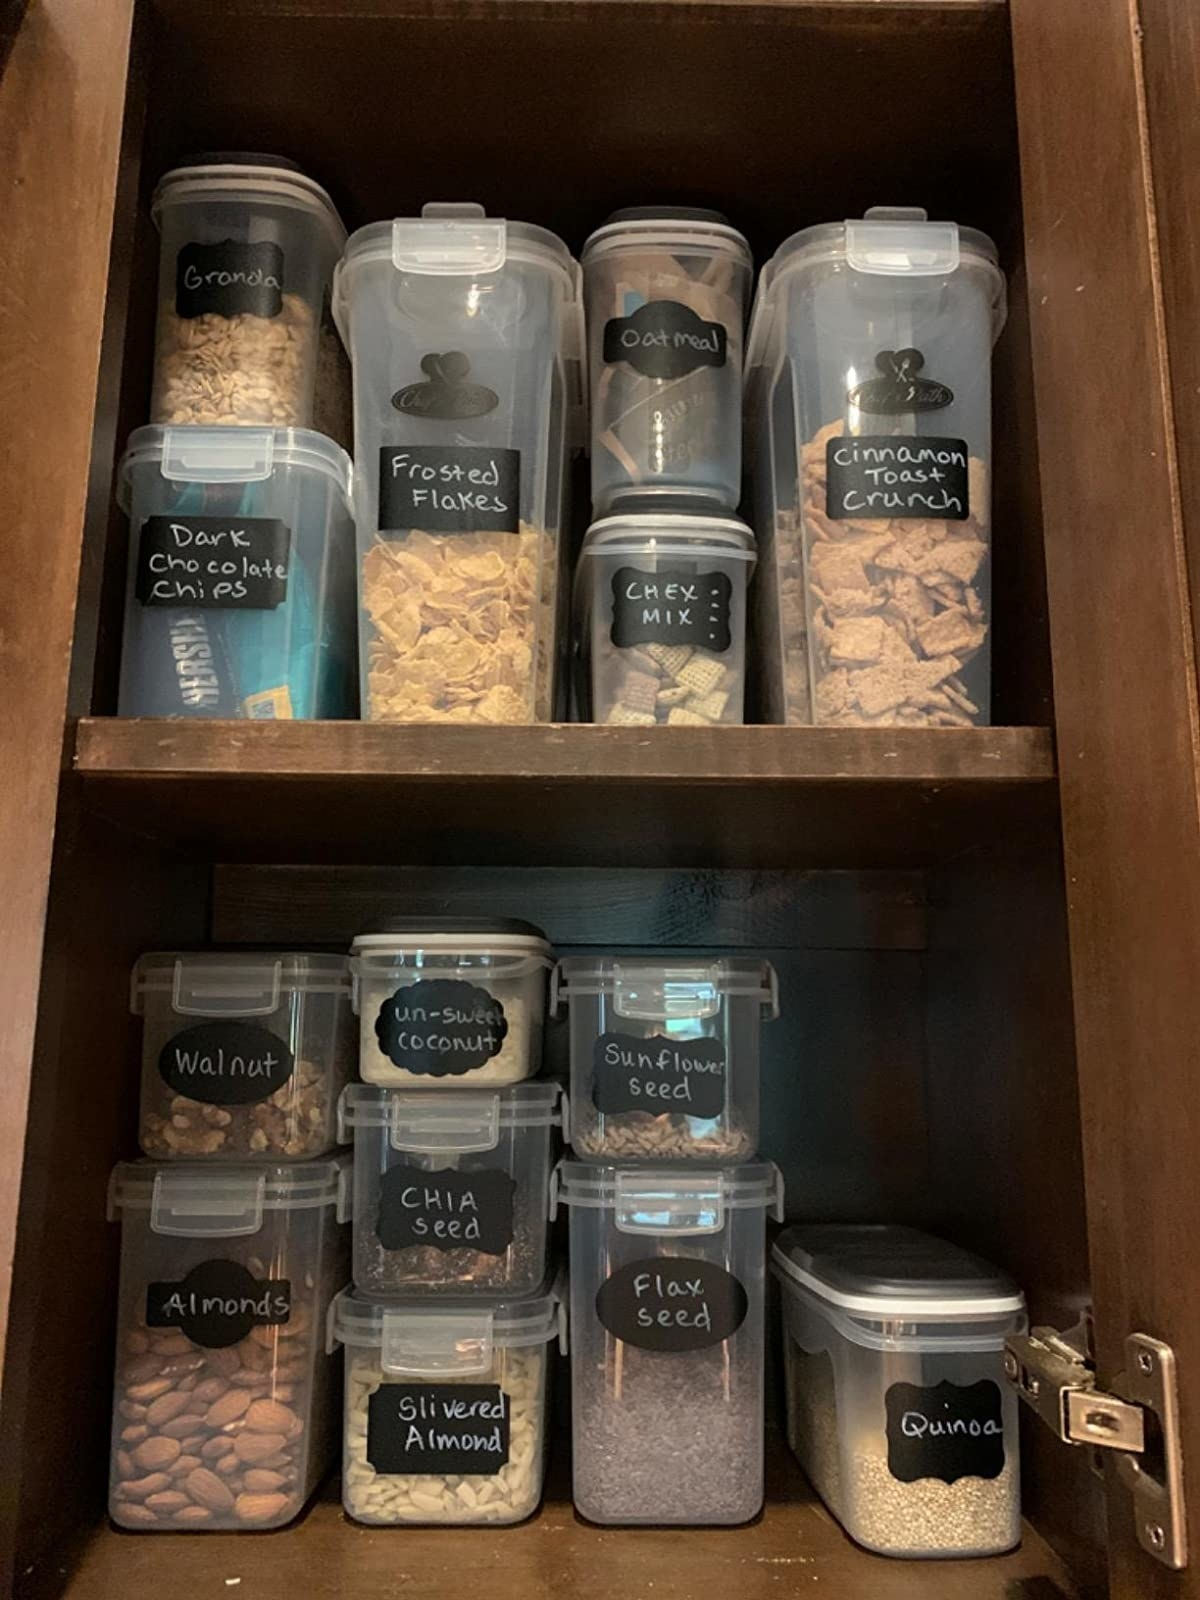 Amazon reviewer photo of cabinet filled with airtight storage containers